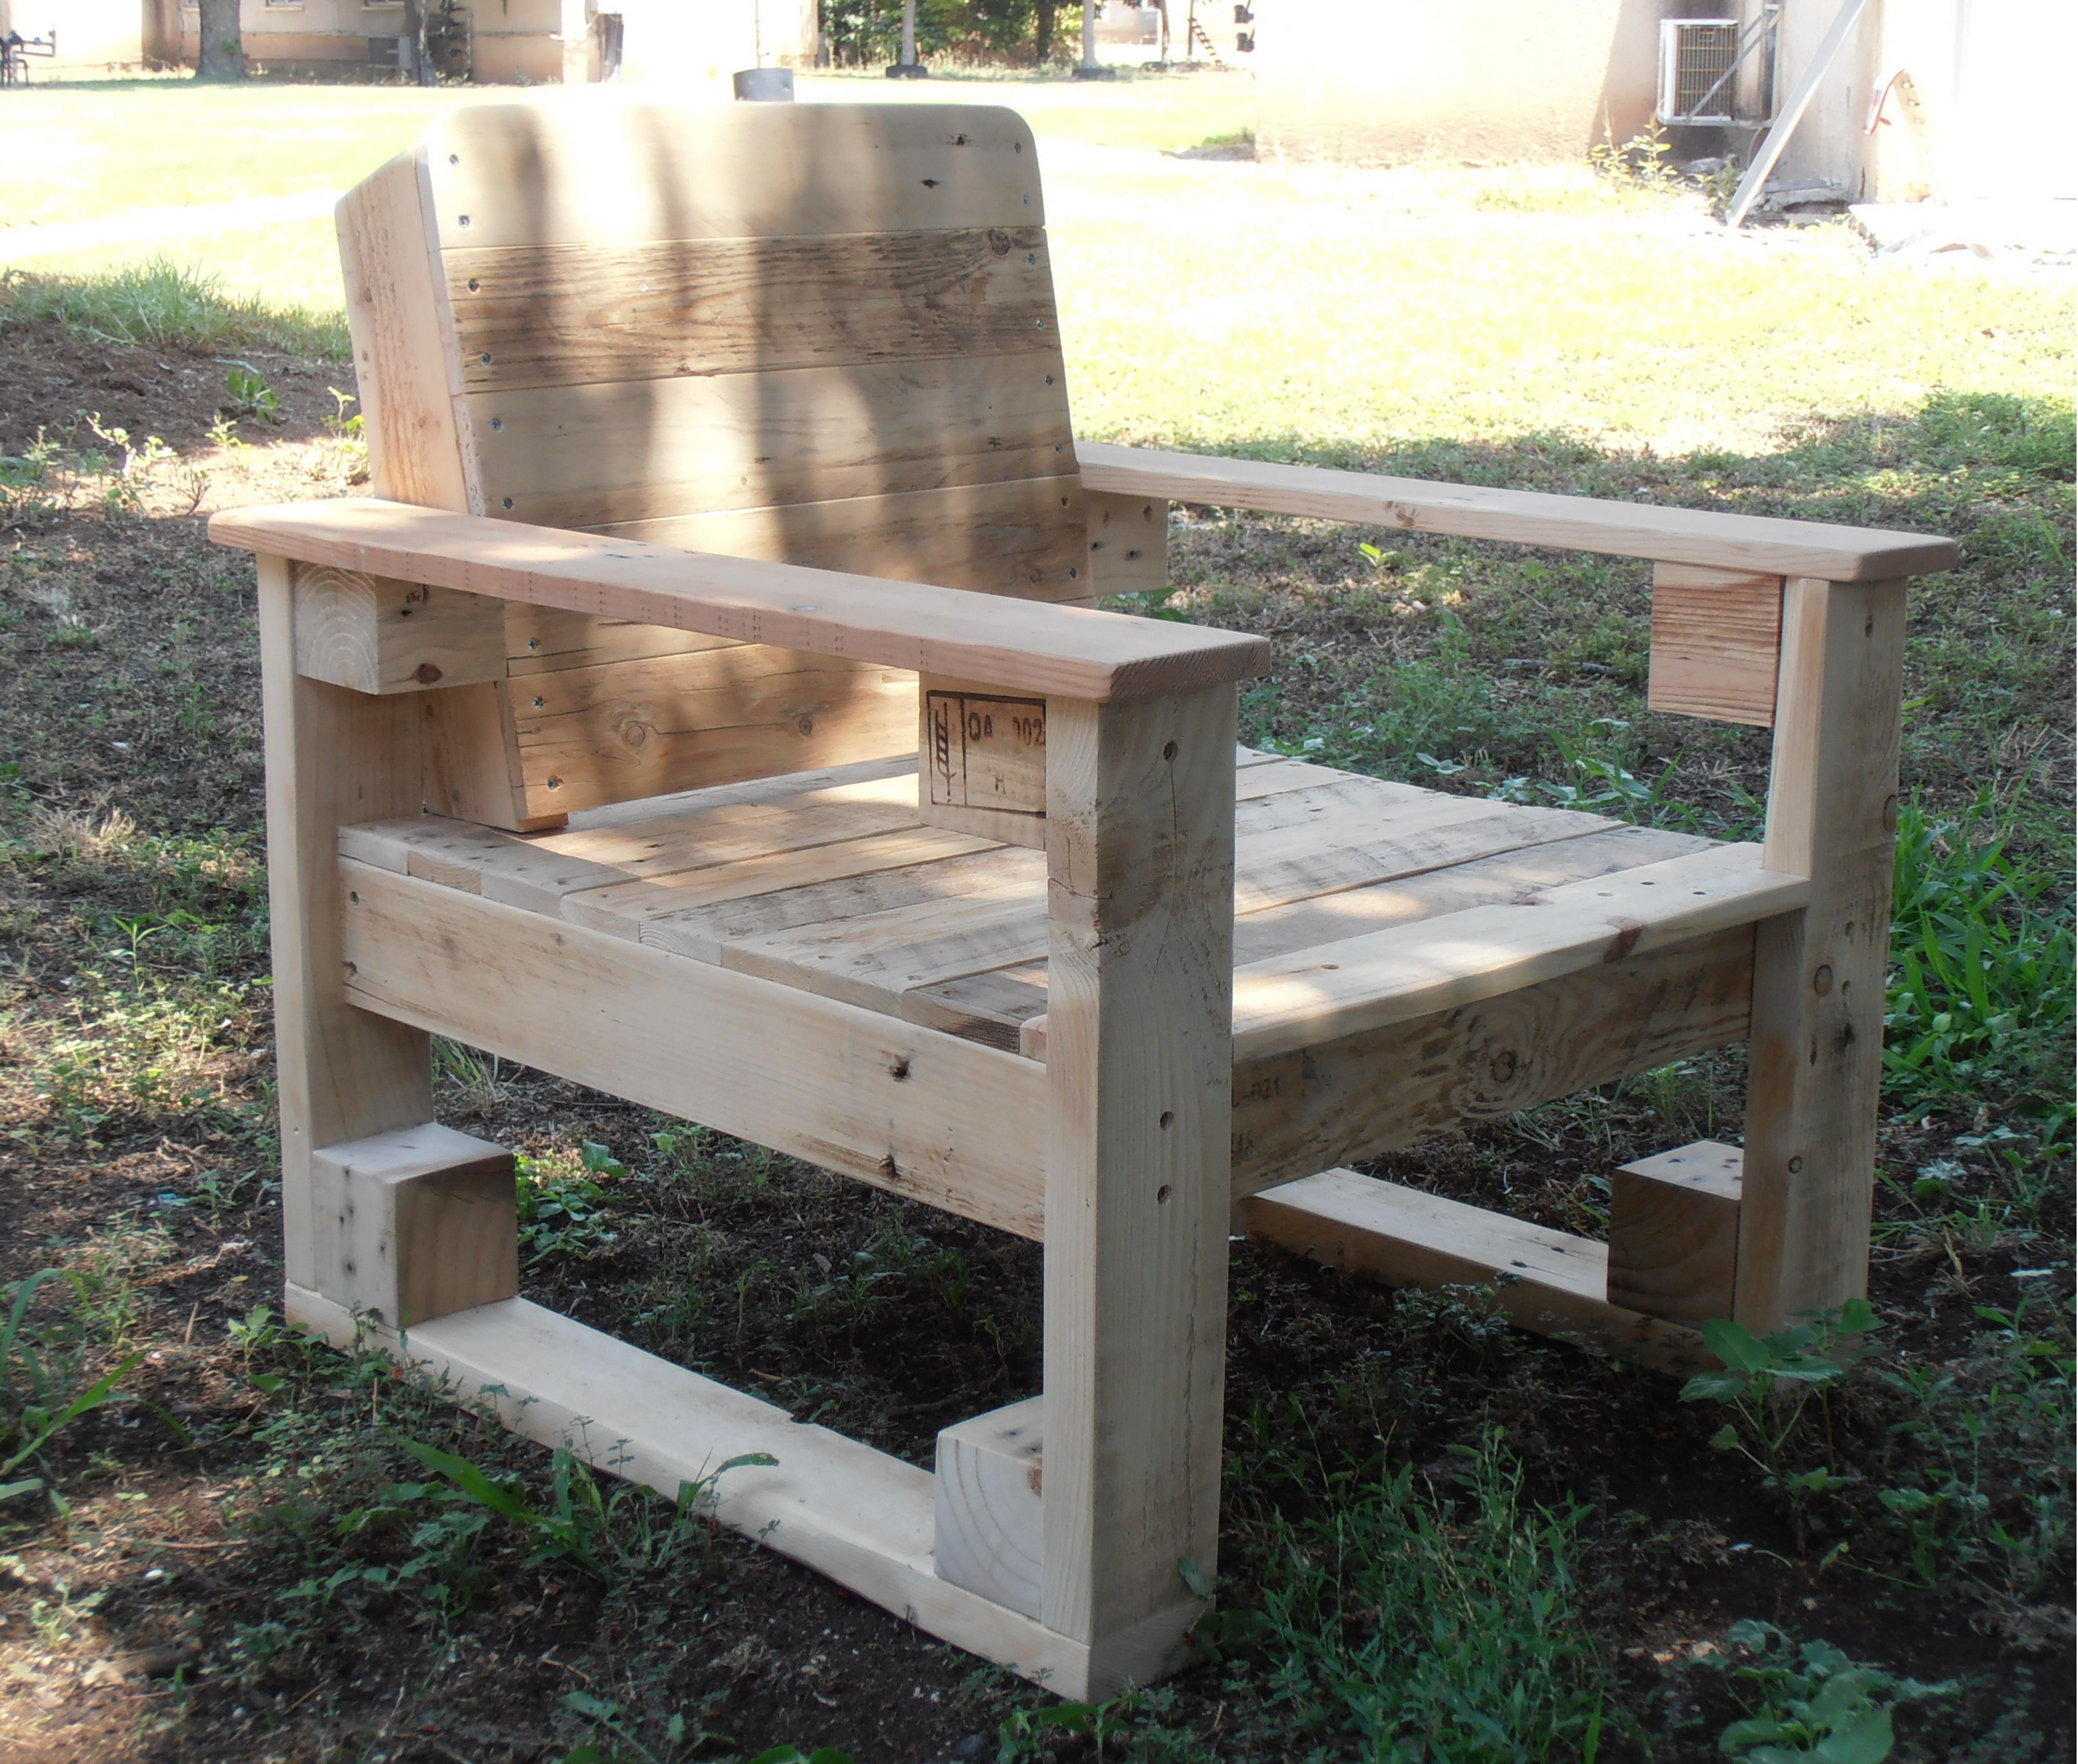 Complete Pallet Garden Set Pallet Ideas 1001 Pallets: Pallet Chair For Outdoor Use